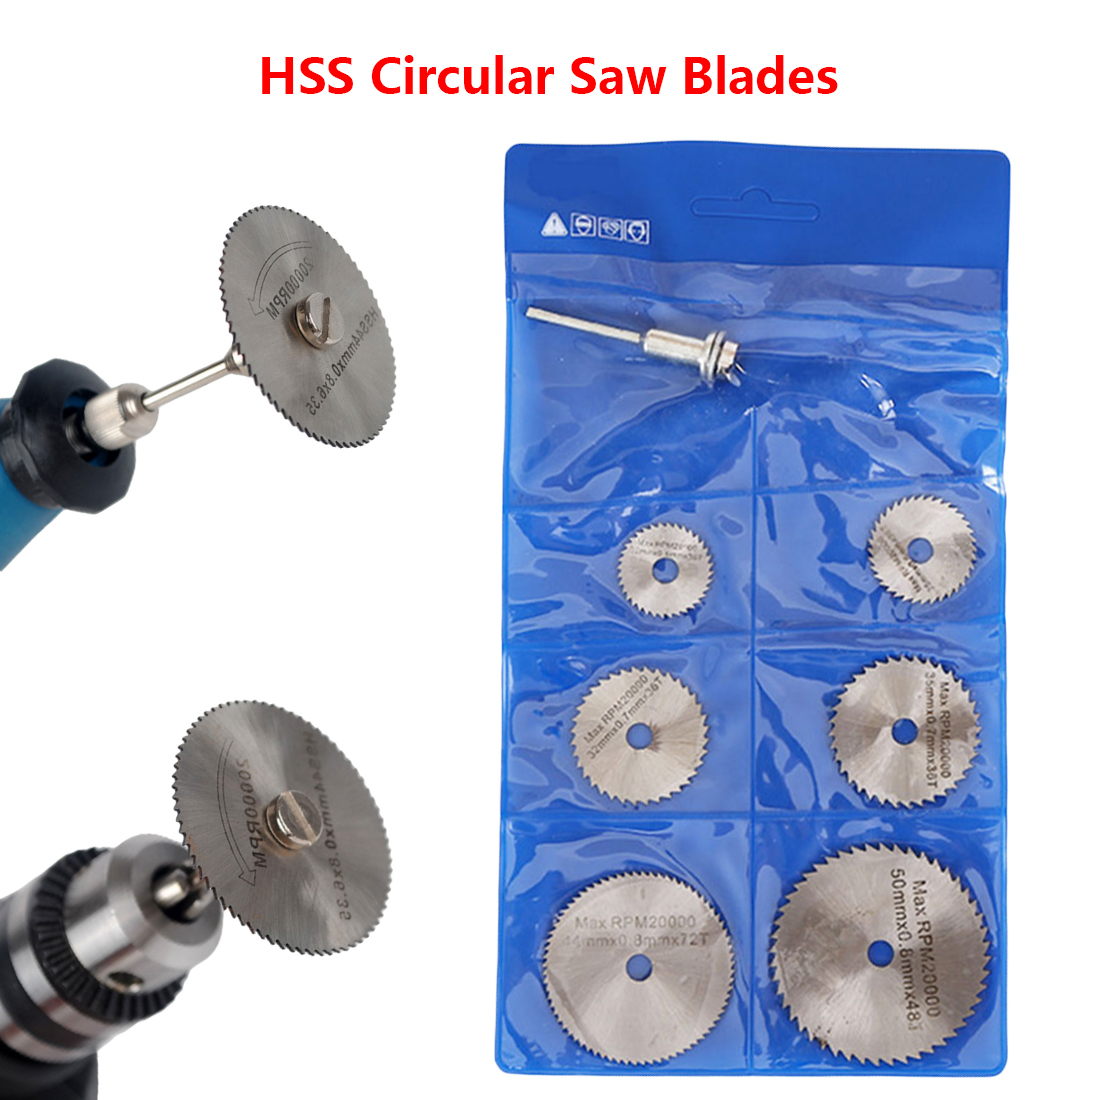 6Pcs Saw Blade +1pcs Mandrel HSS High-speed-steel Circular Rotary Blade Wheel Discs Mandrel For Dremel Tools Wood Cutting Saw